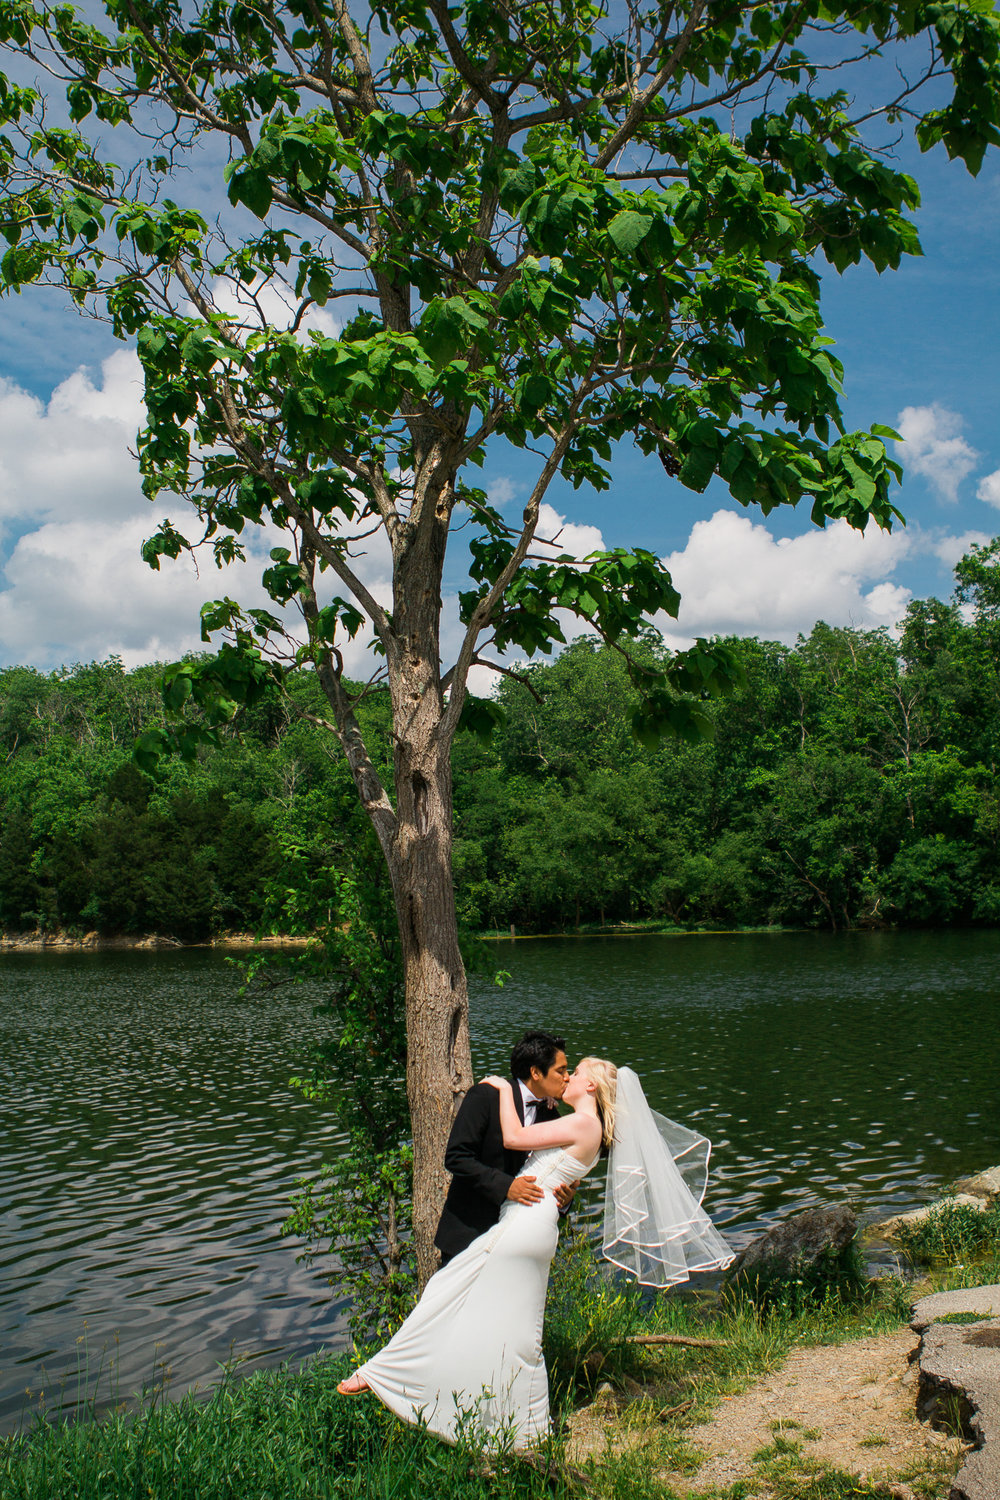 Richmond Kentucky Wedding Photographer - Ariana Jordan Photography -3-2.jpg